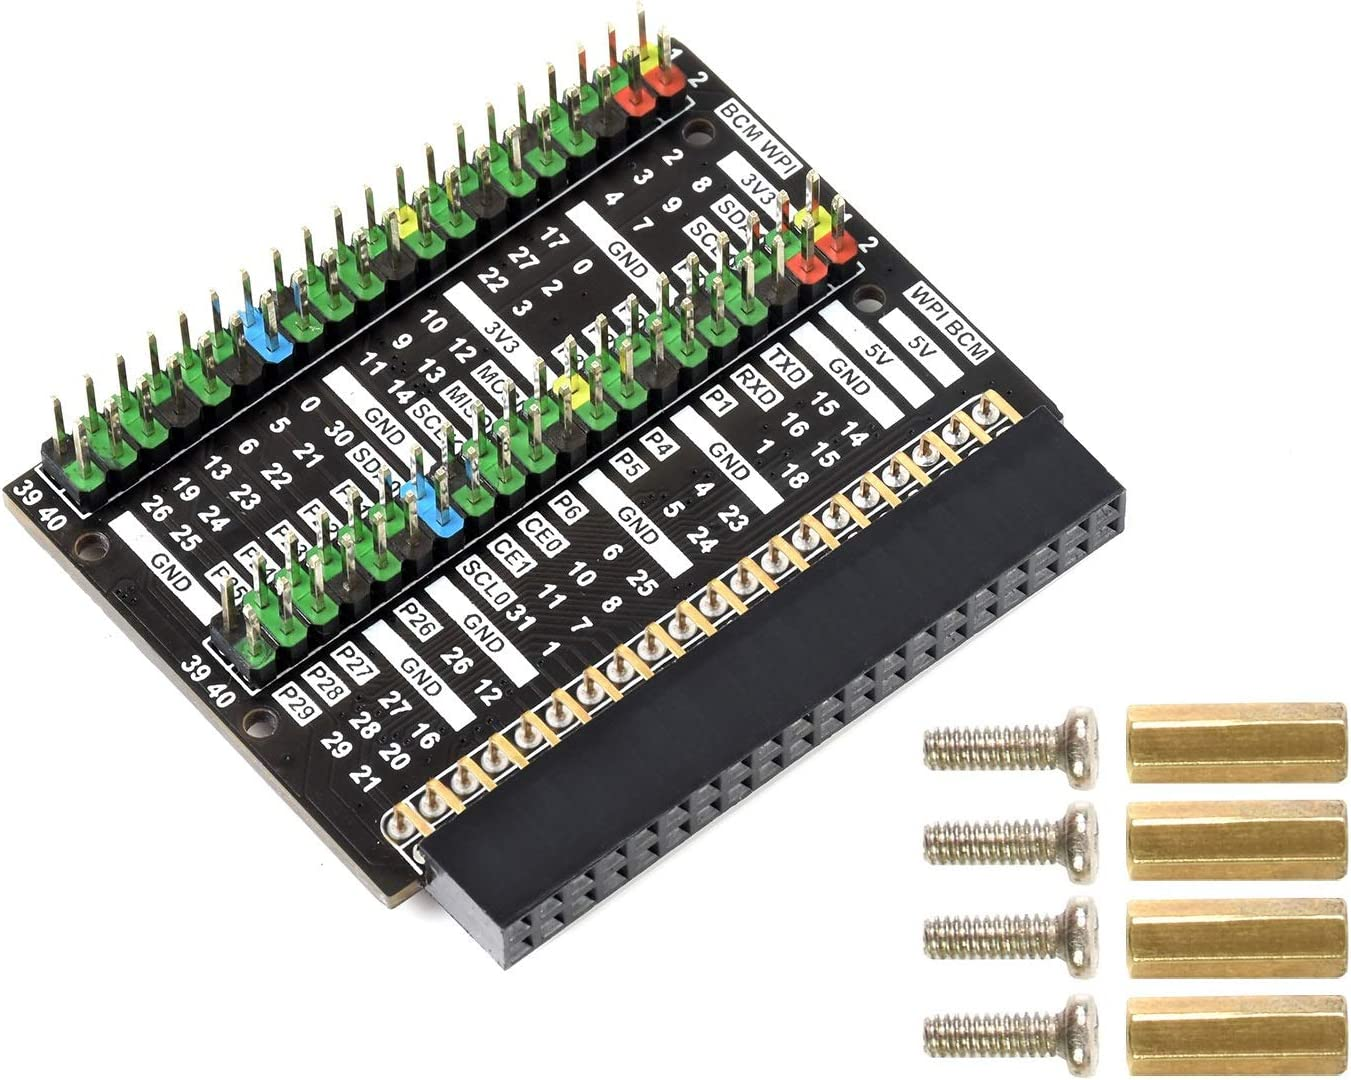 2X 40 PIN GPIO Header Max 86% OFF Baltimore Mall Board Adapter Color-Coded Expansion